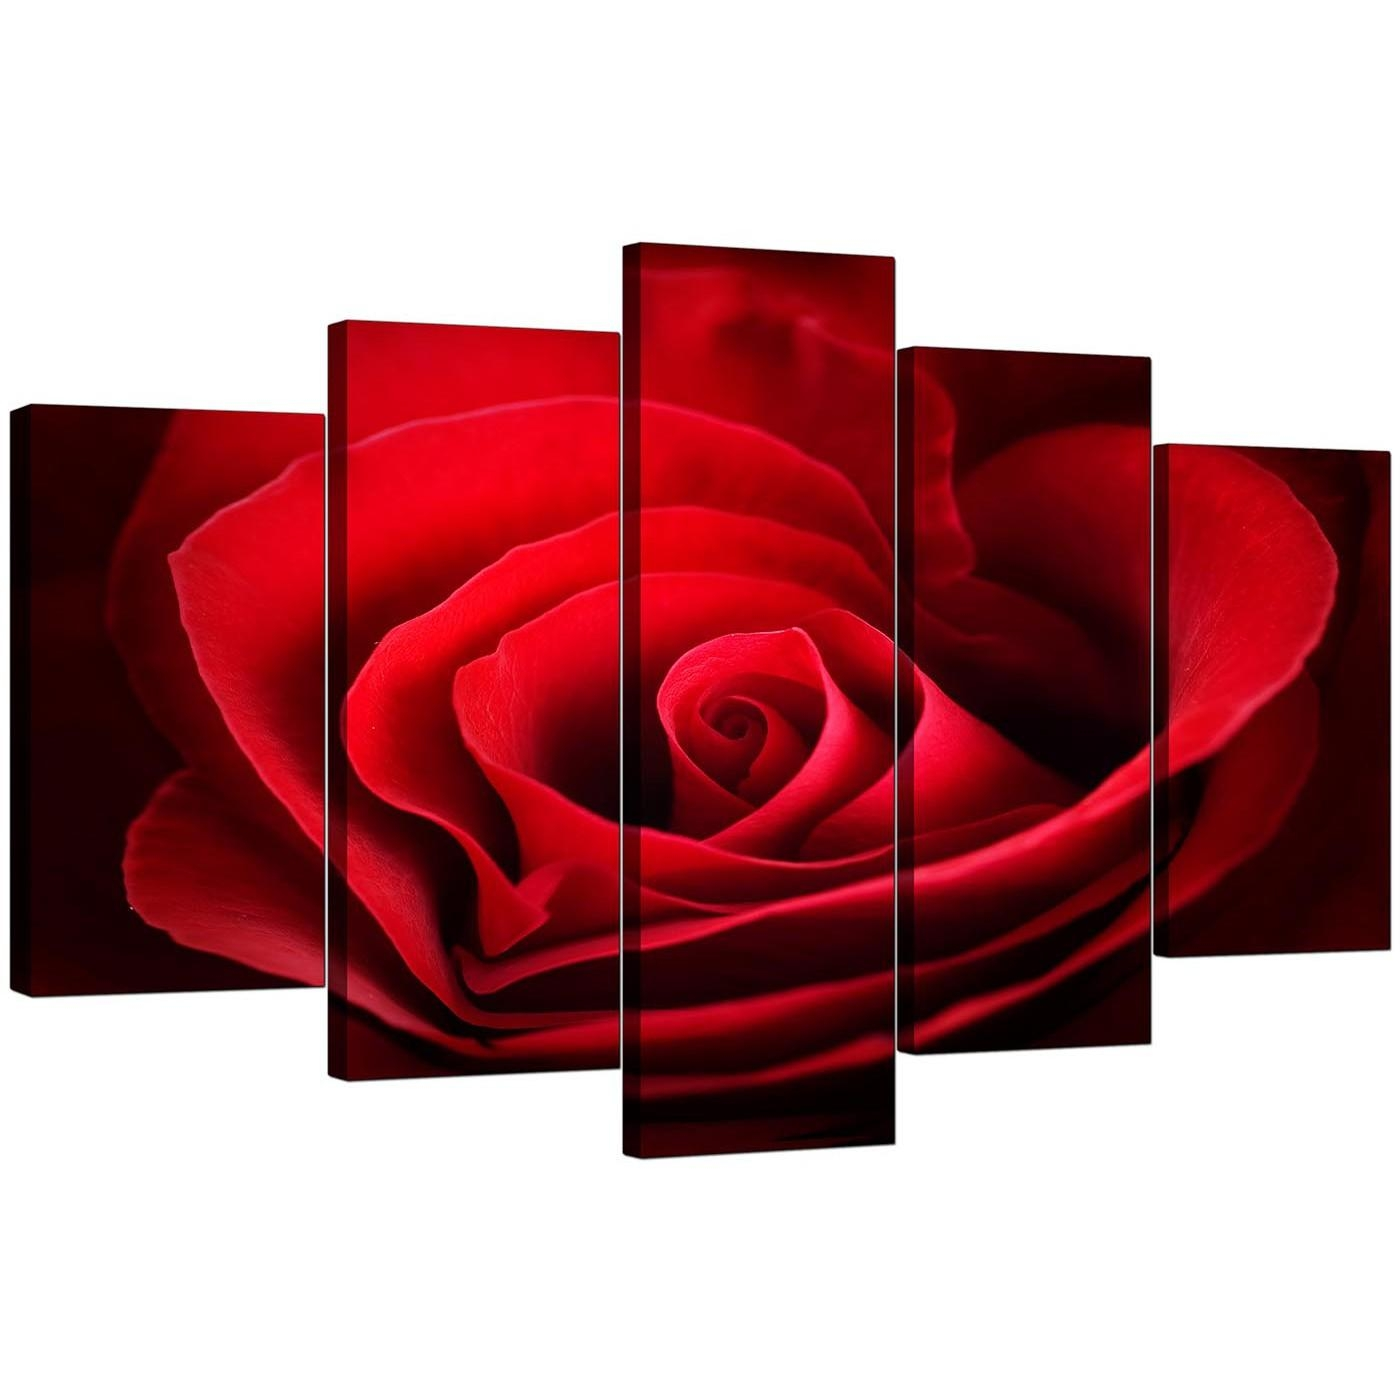 Extra Large Rose Canvas Wall Art 5 Panel In Red Inside Rose Canvas Wall Art (Image 11 of 20)